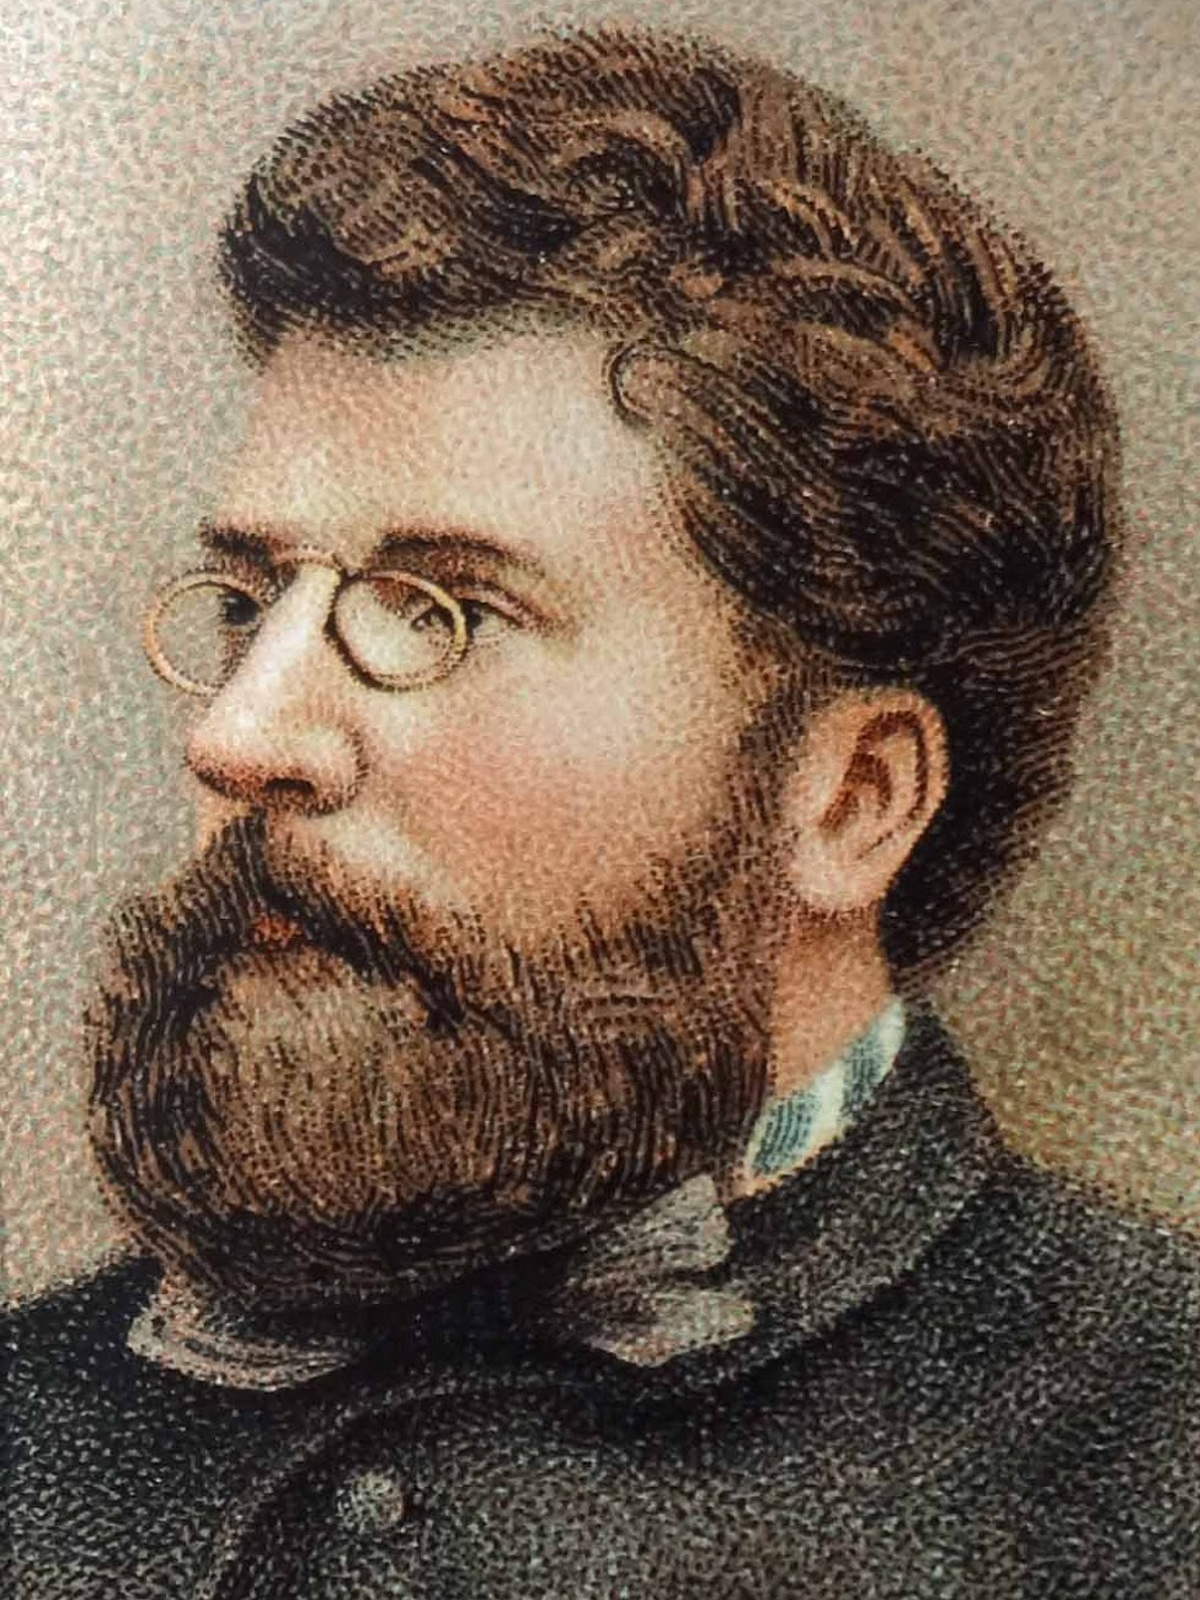 Katie phang attorney wikipedia images - Georges Bizet 1838 1875